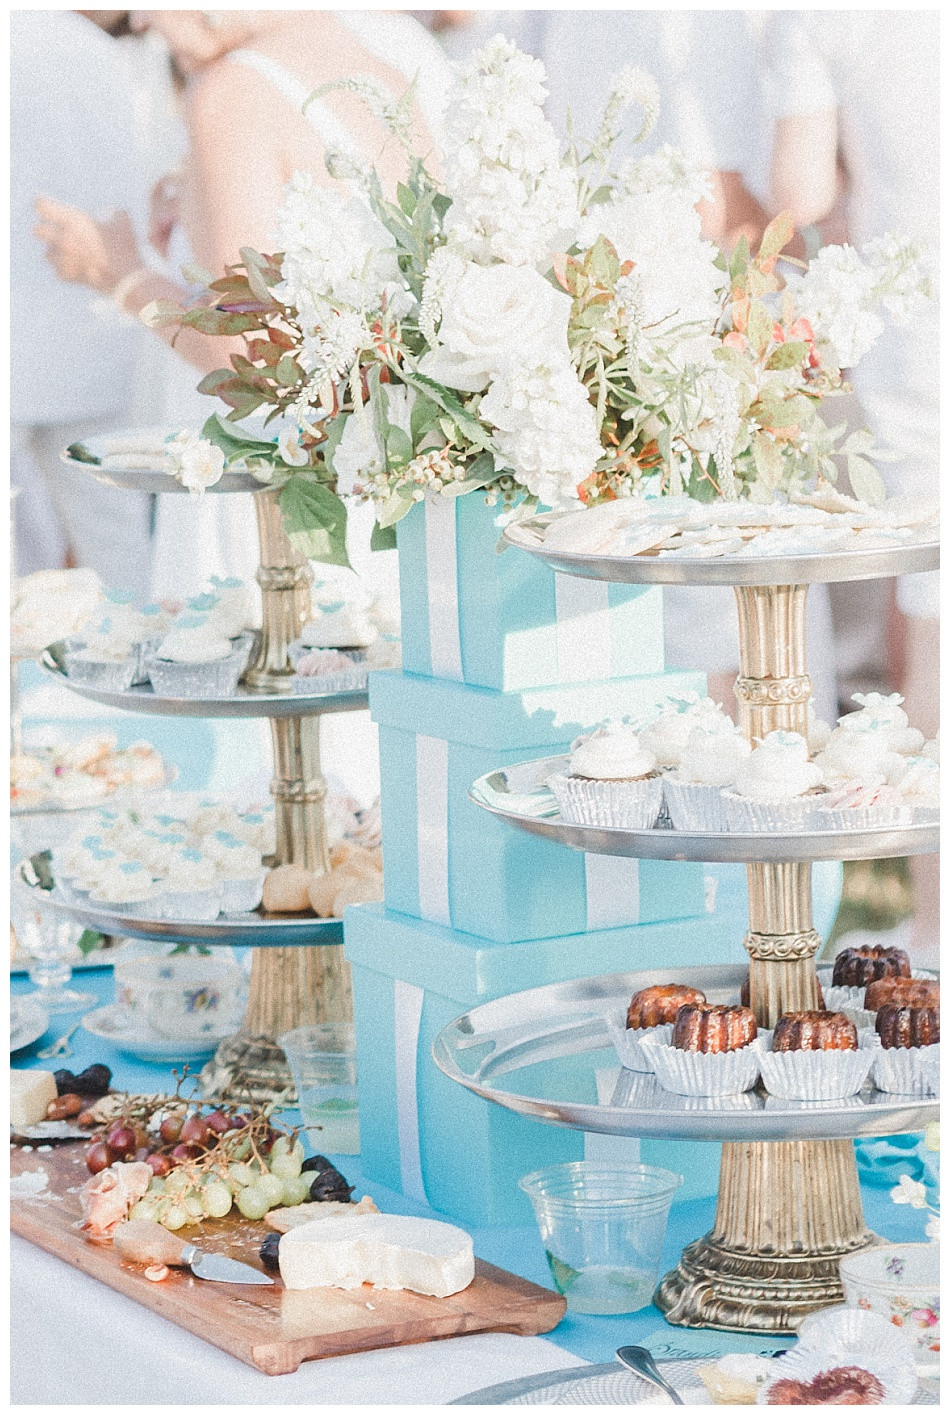 Tiffany's-inspired tablescape, cupcakes, cheese and crackers, blue presents centerpiece.  Fete en Blanc (Party in White) Lancaster 2019 at Longs Park by Angela Weiler Photography - Fine Art Wedding and Lifestyle Photographer in Lancaster Pennsylvania.